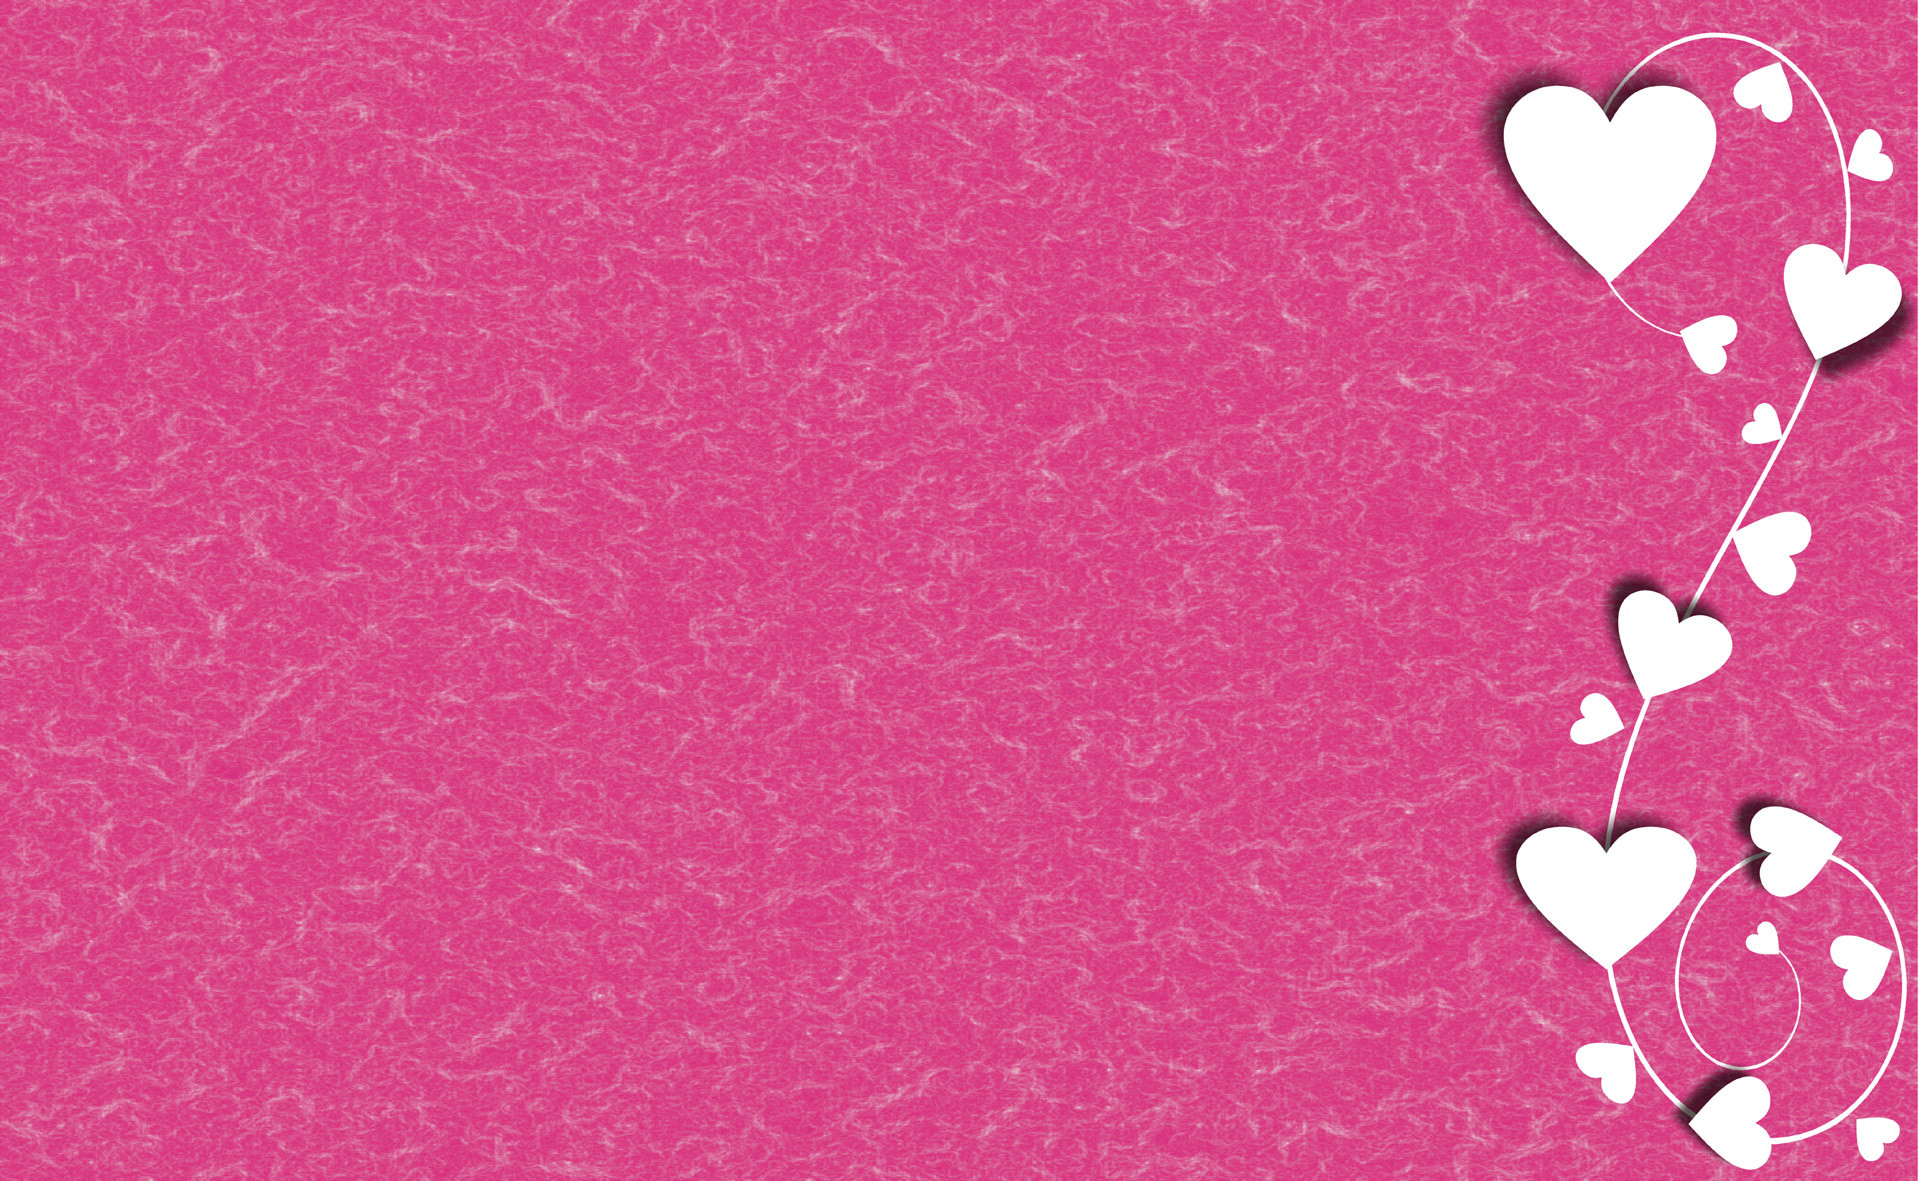 Pink Love Heart Backgrounds ·①